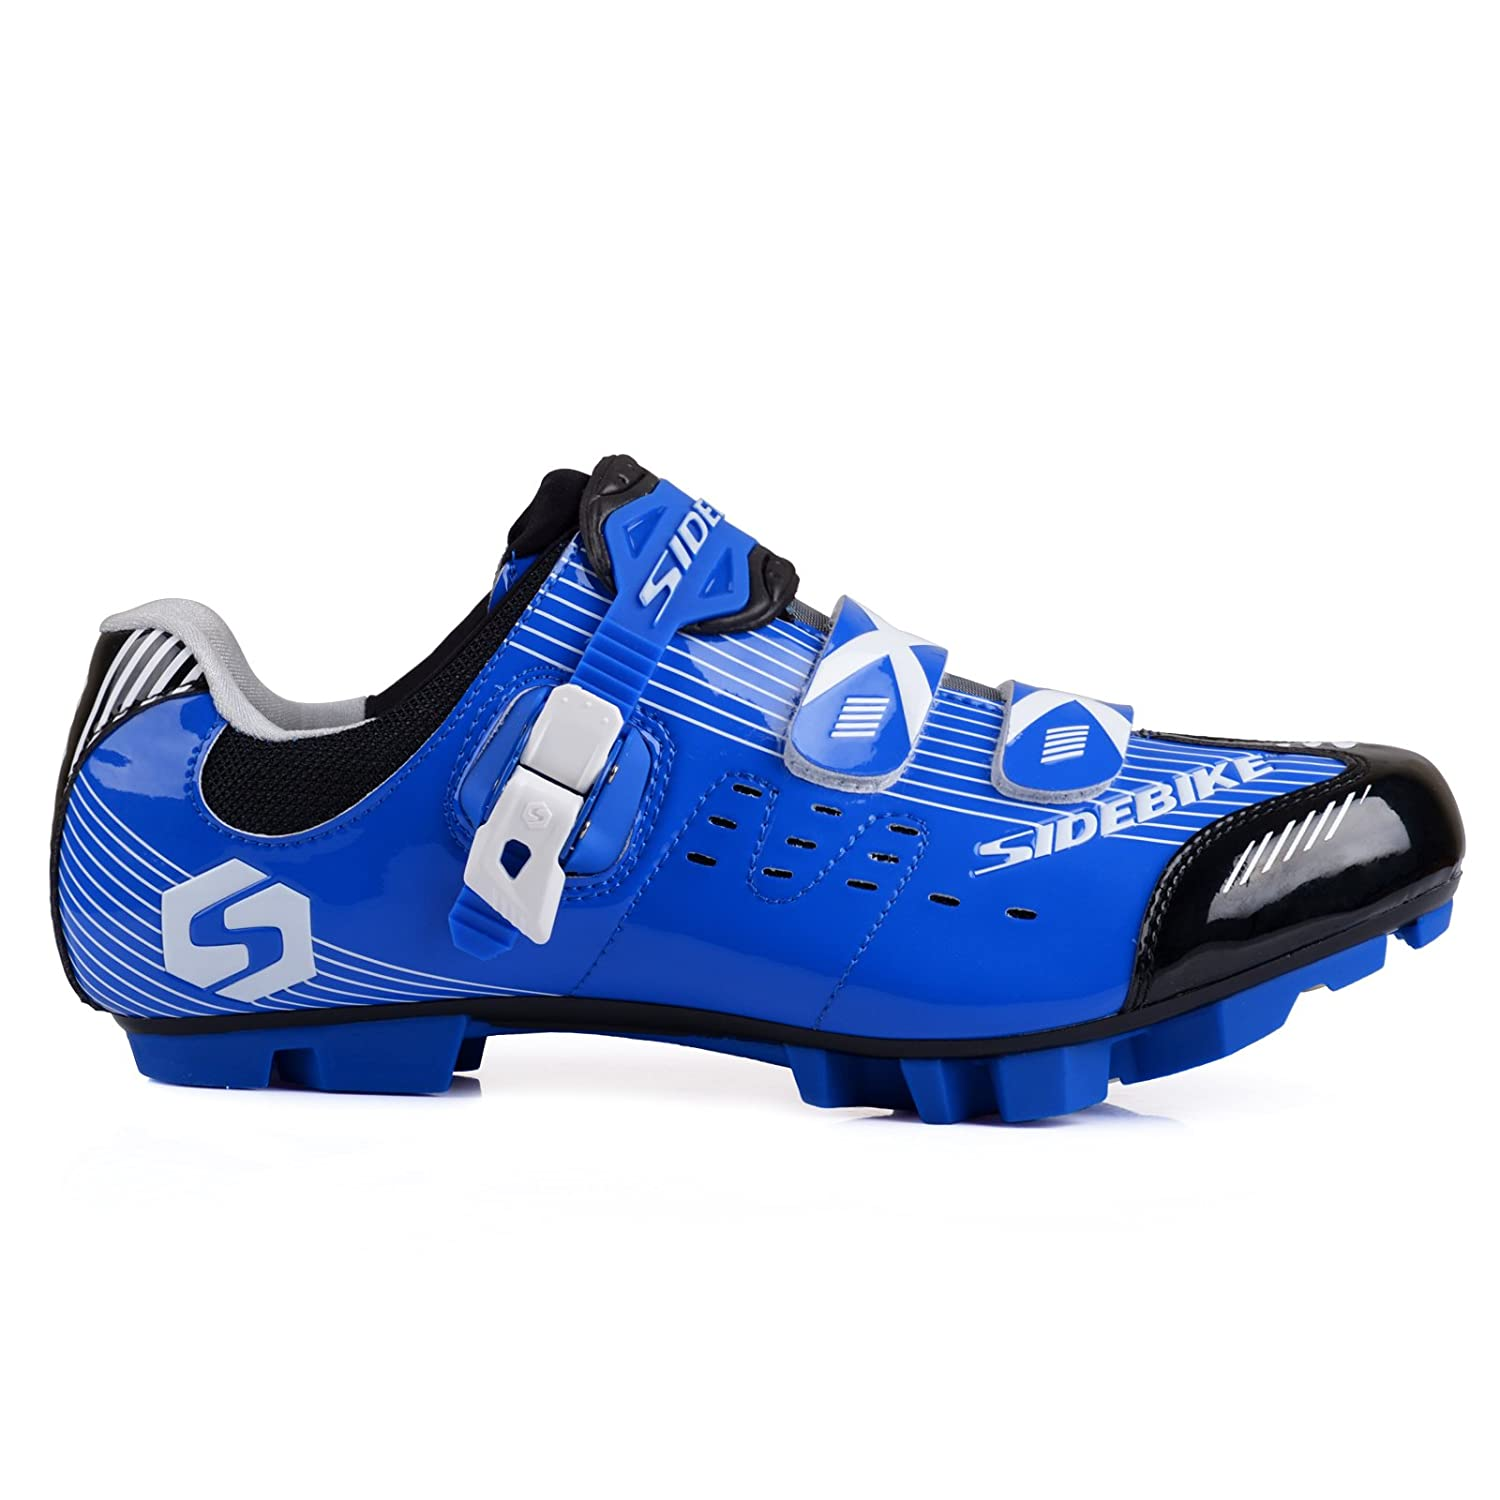 bluee for MTB Smartodoors Sidebike SD002 Men's All-Around Road Cycling shoes with Carbon Soles